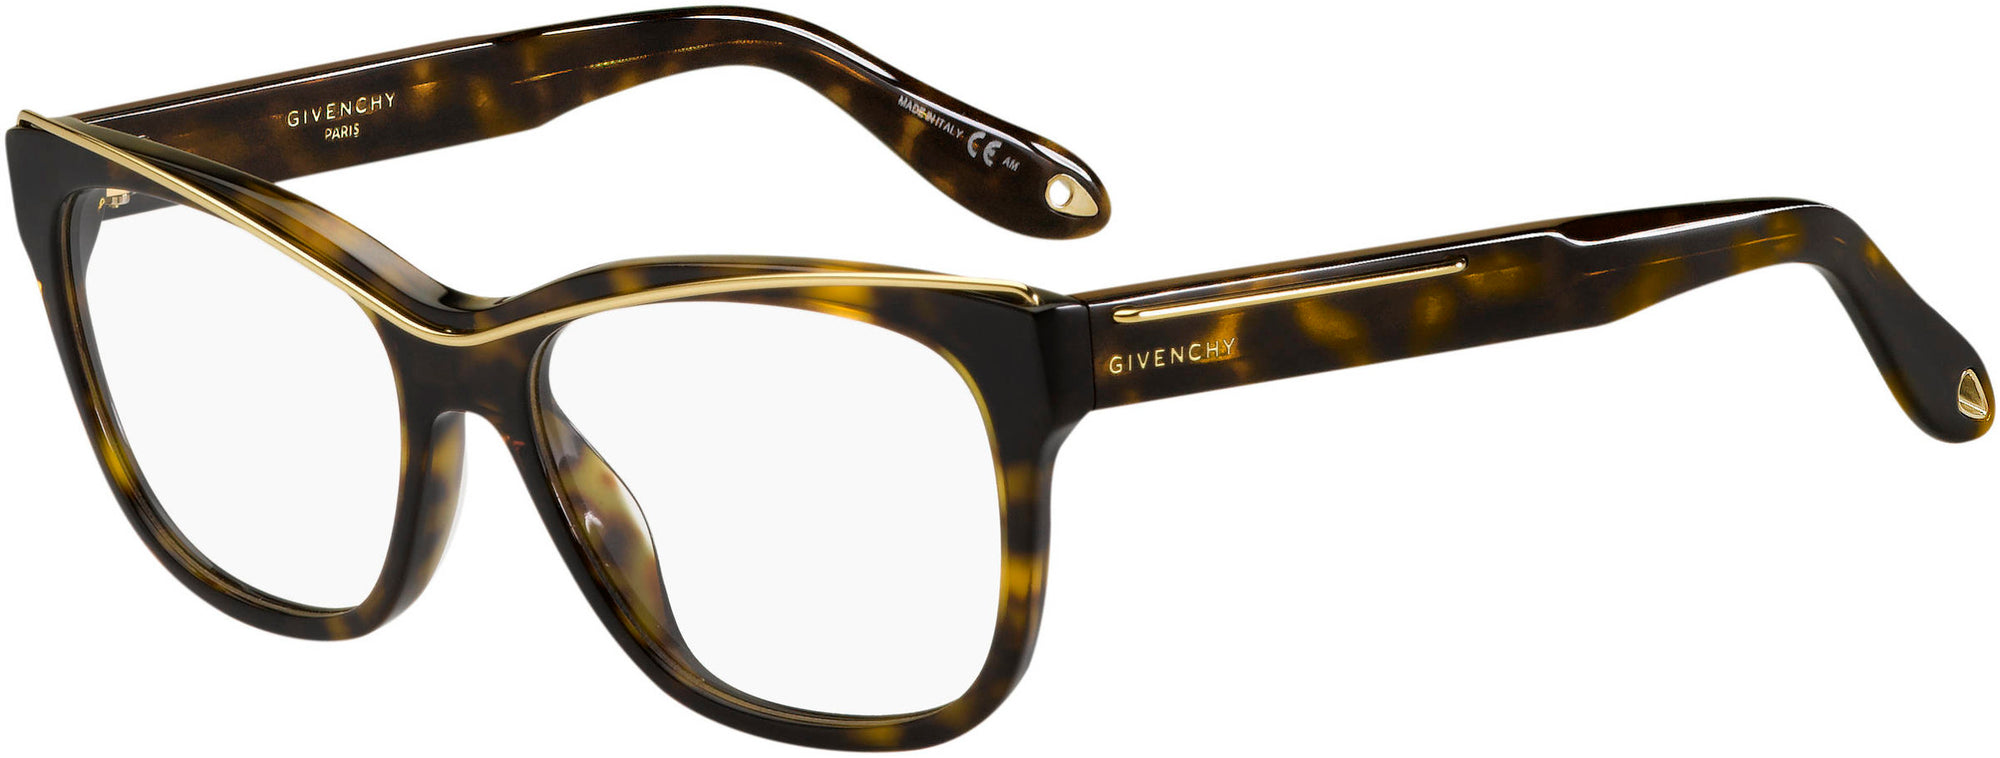 Givenchy GV 0027 Rectangular Eyeglasses 0086-0086  Dark Havana (00 Demo Lens)